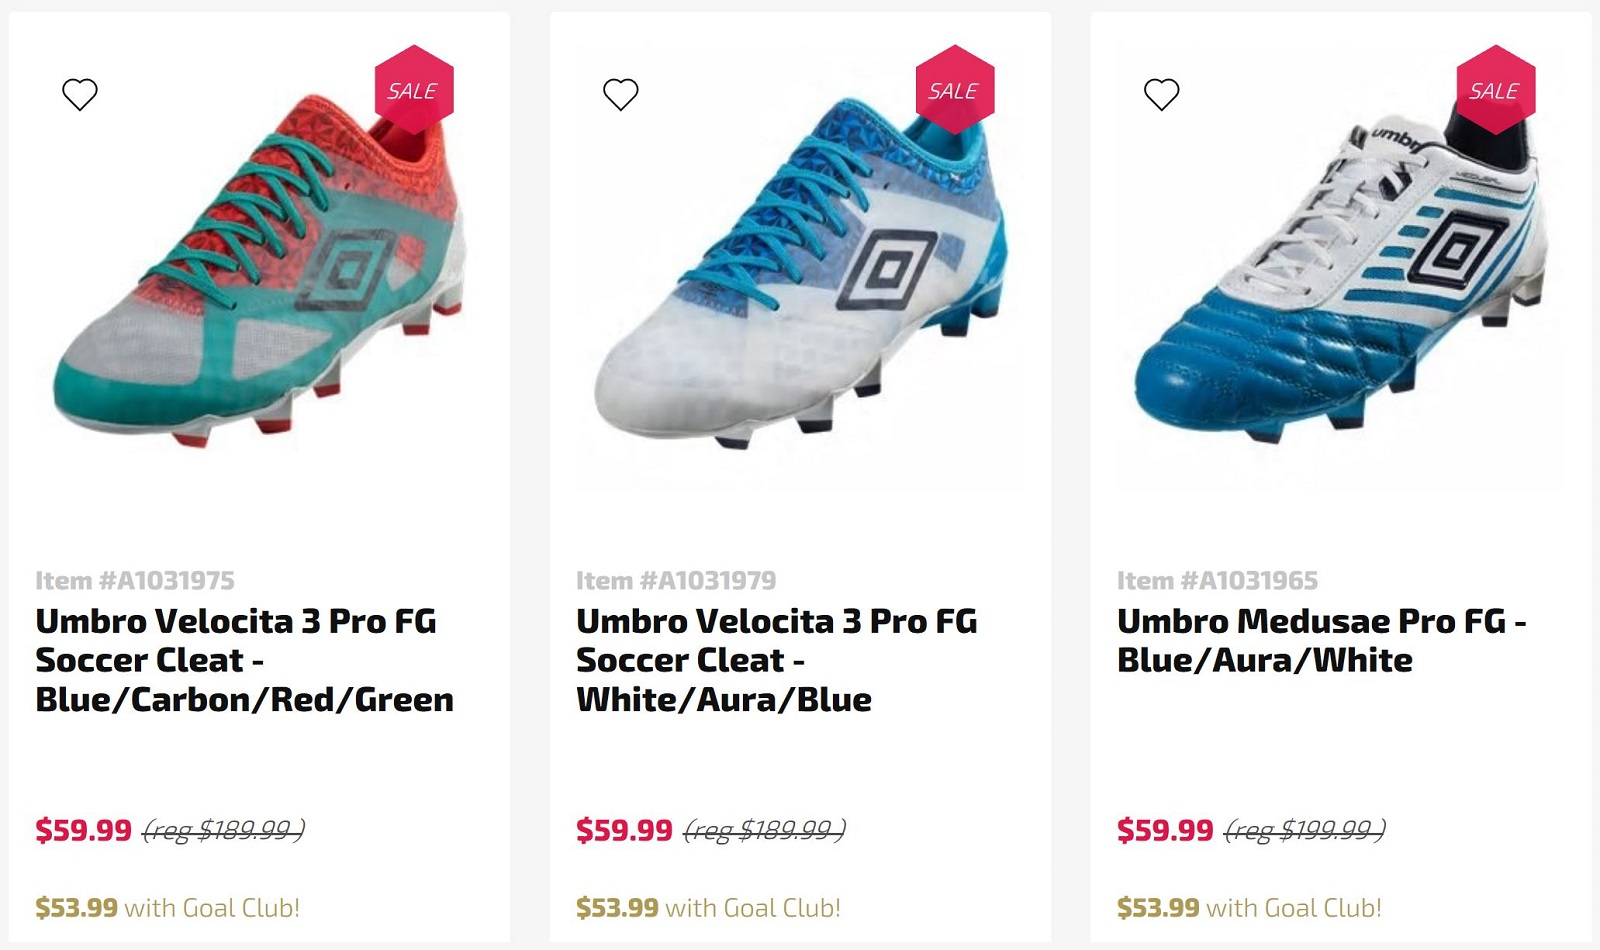 Open Up The Umbro Boot Vault - Up To 70